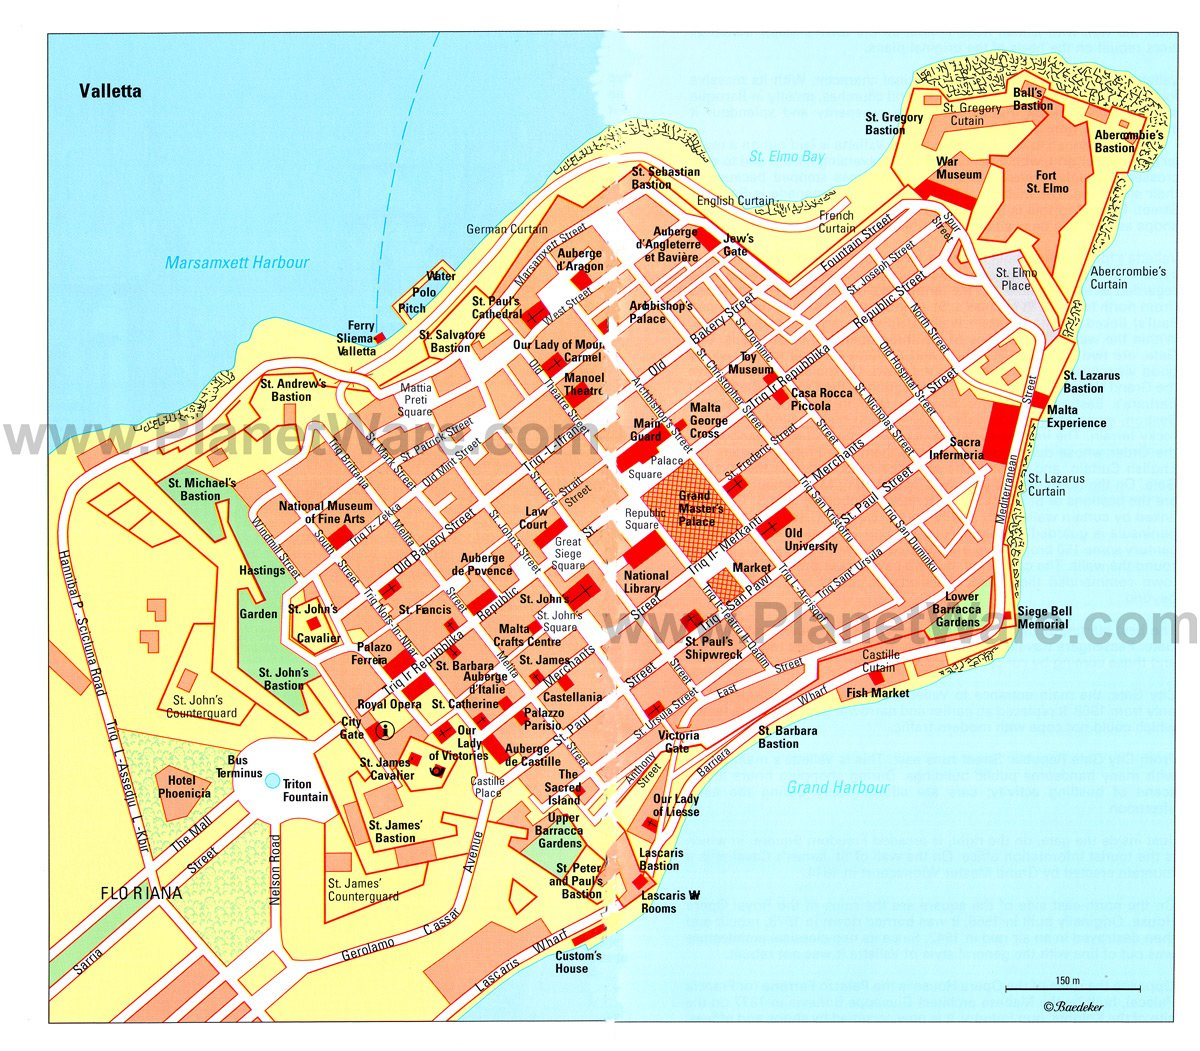 map of valletta